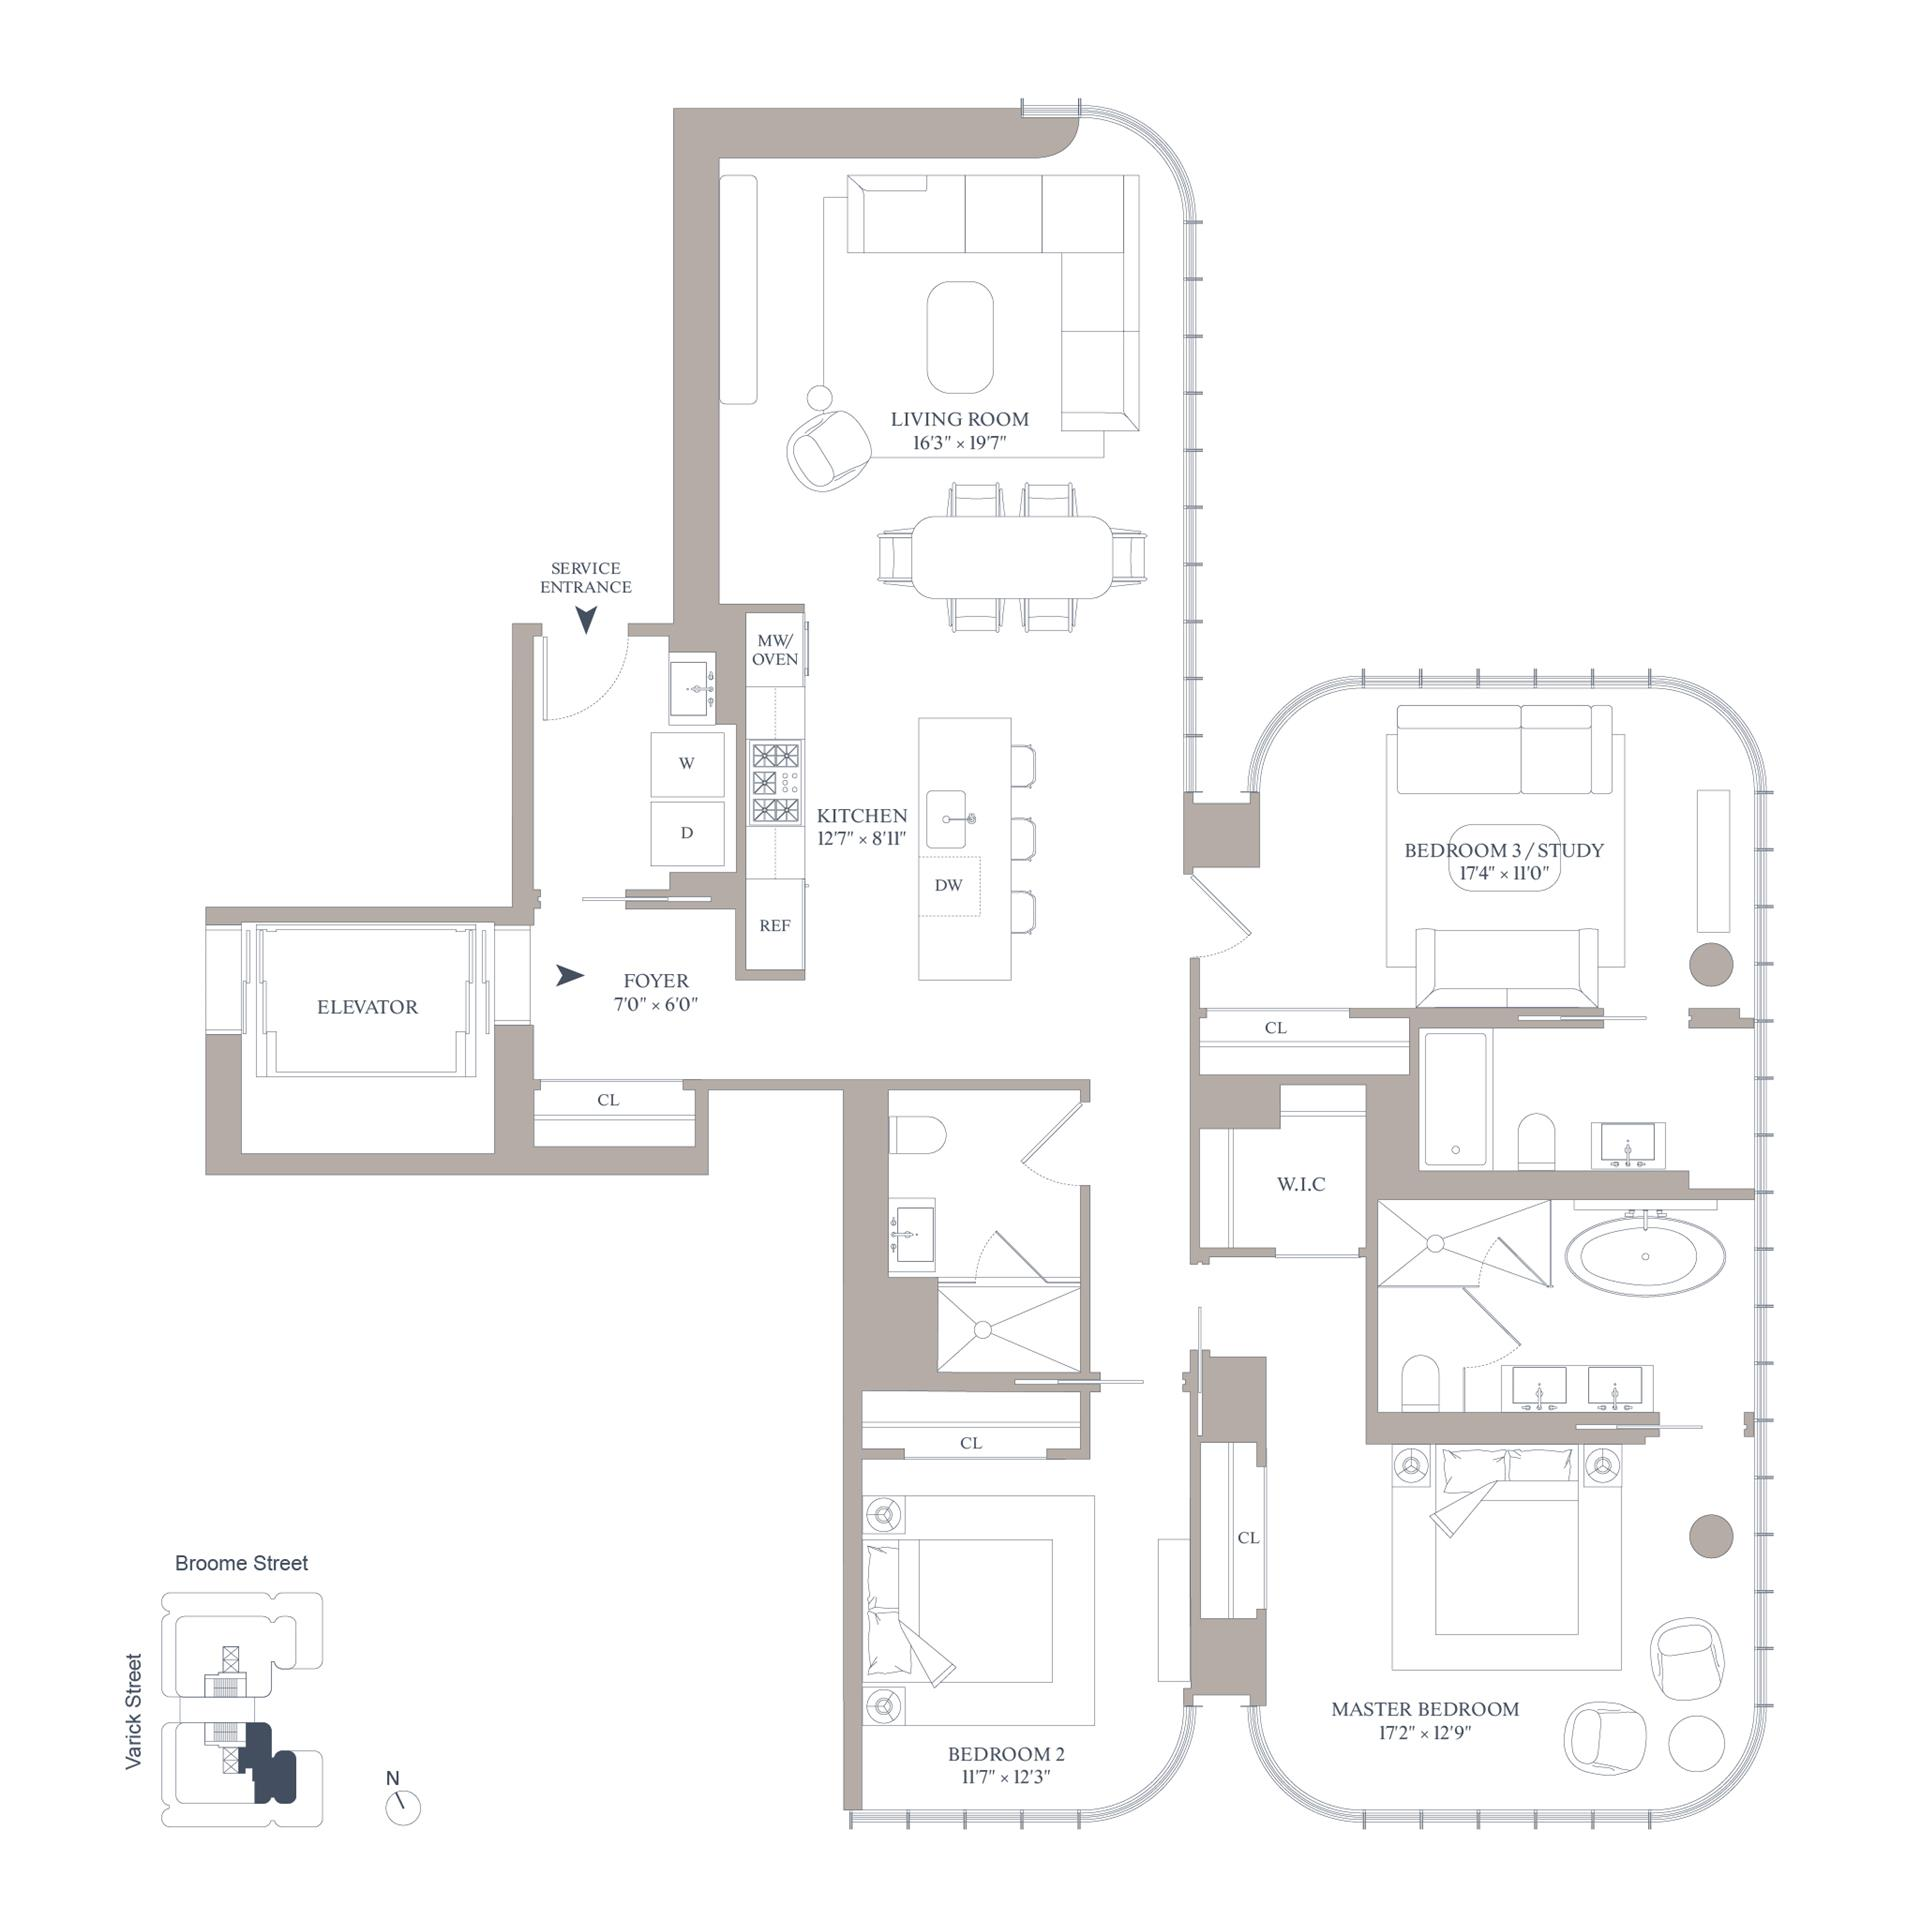 Floor plan of 565 Broome St, S22B - SoHo - Nolita, New York